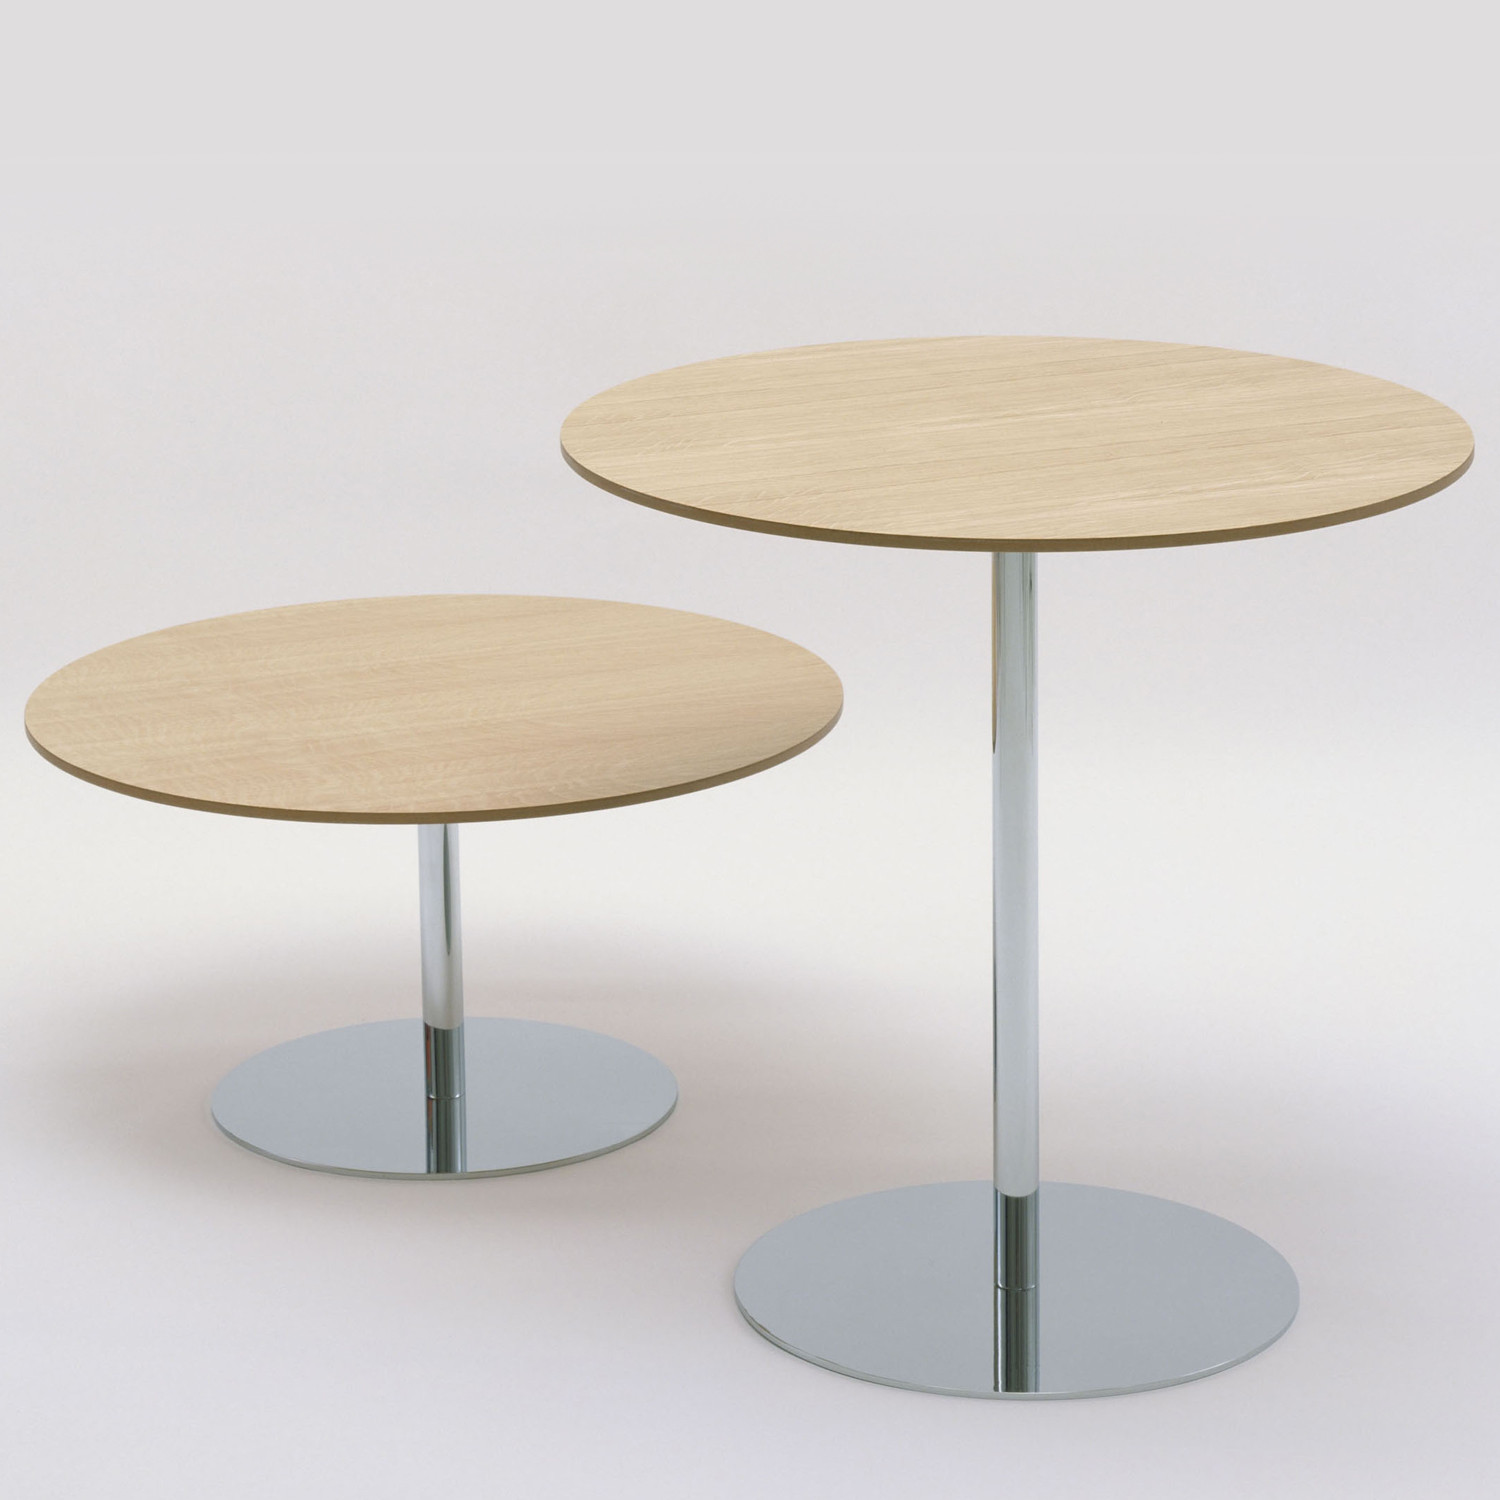 HM20 Tables are available in various heights